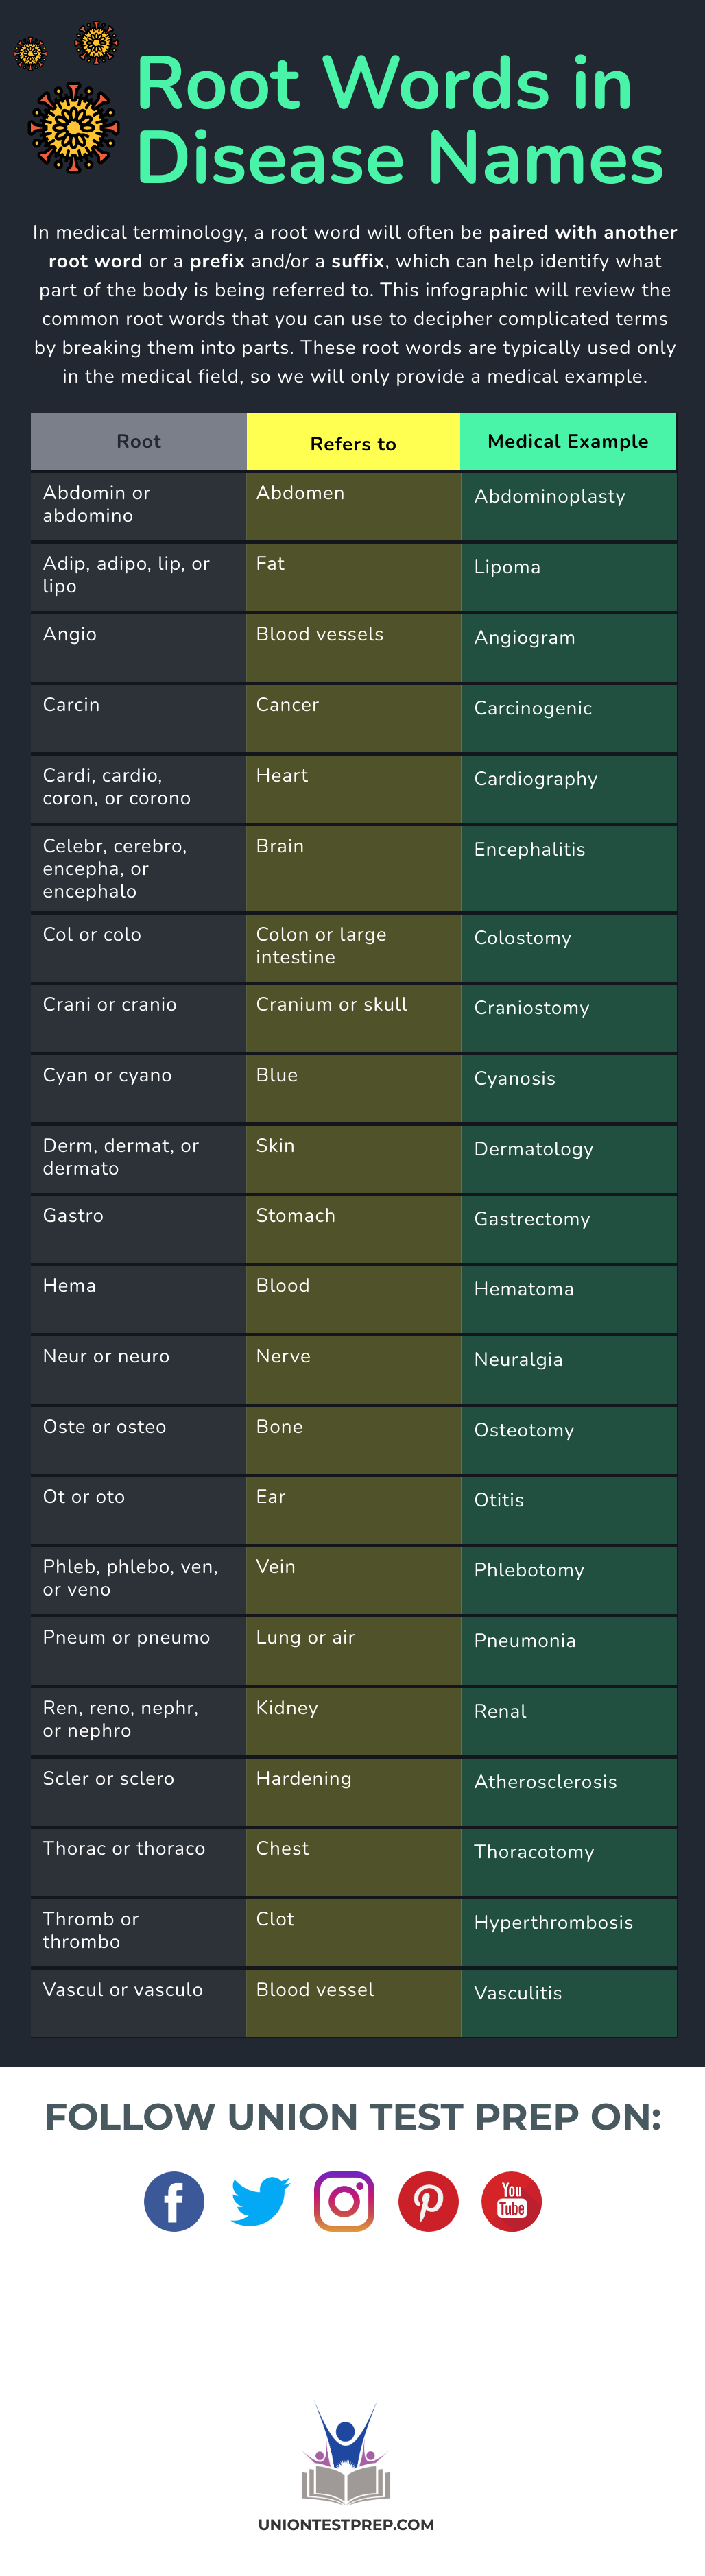 root words in disease names